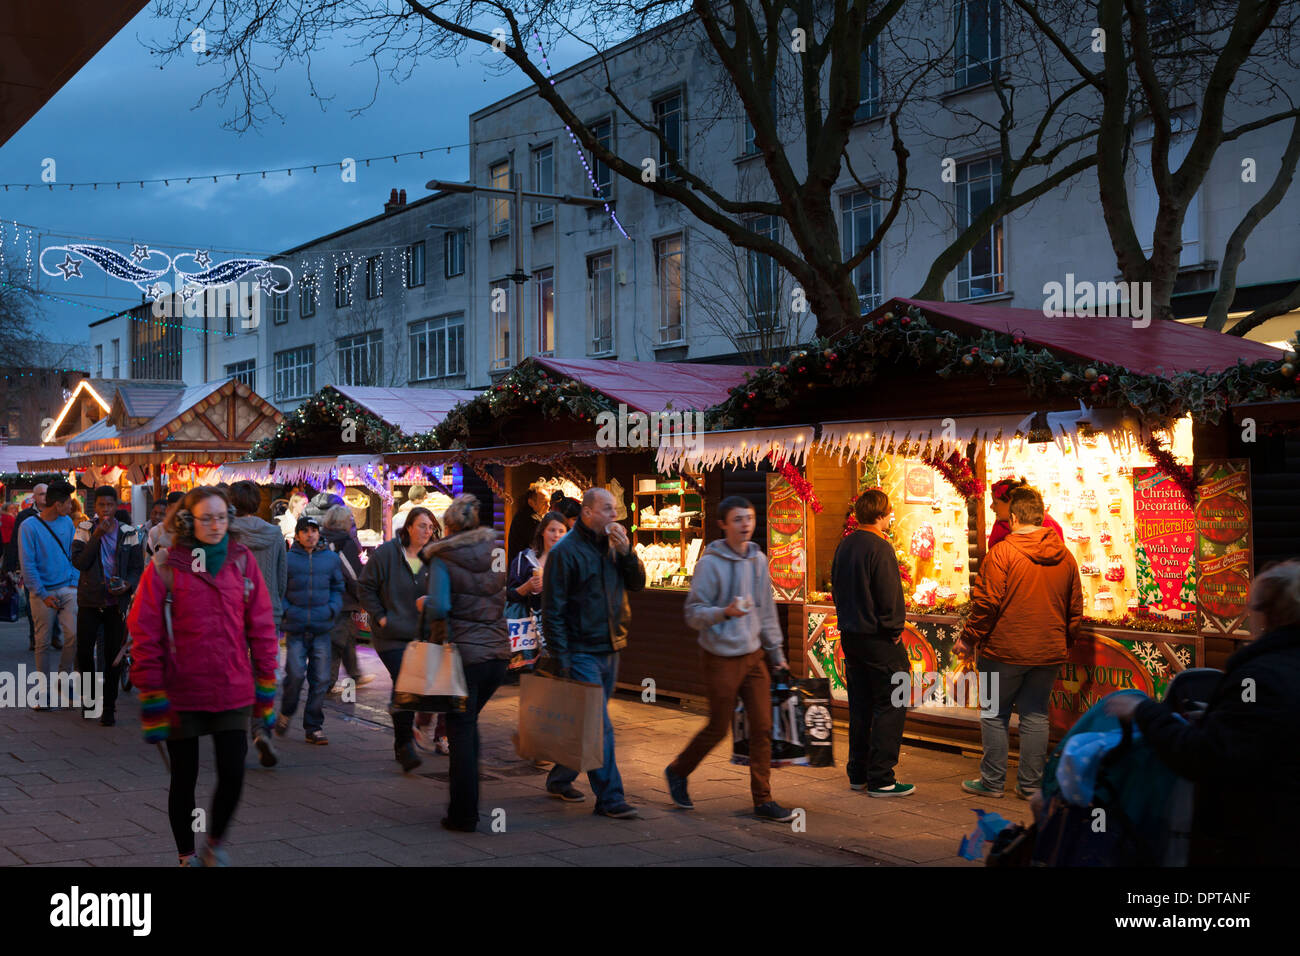 Shoppers at tradition christmas street market. - Stock Image